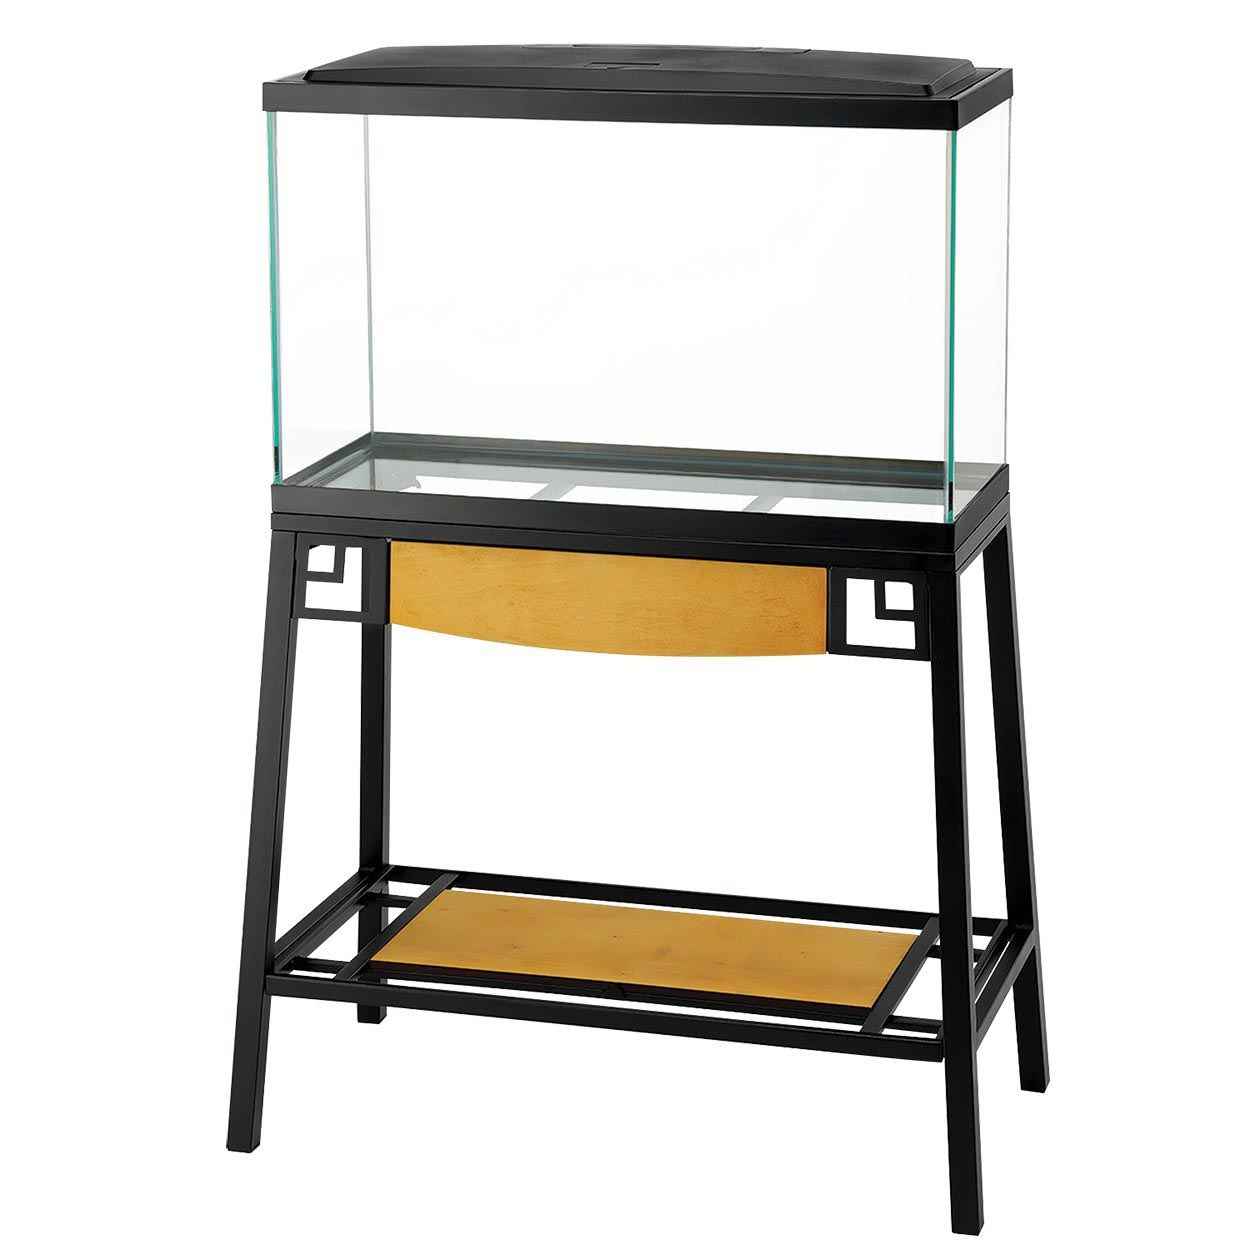 20 gallon fish aquarium stands aquarium design ideas for Fish tank table stand